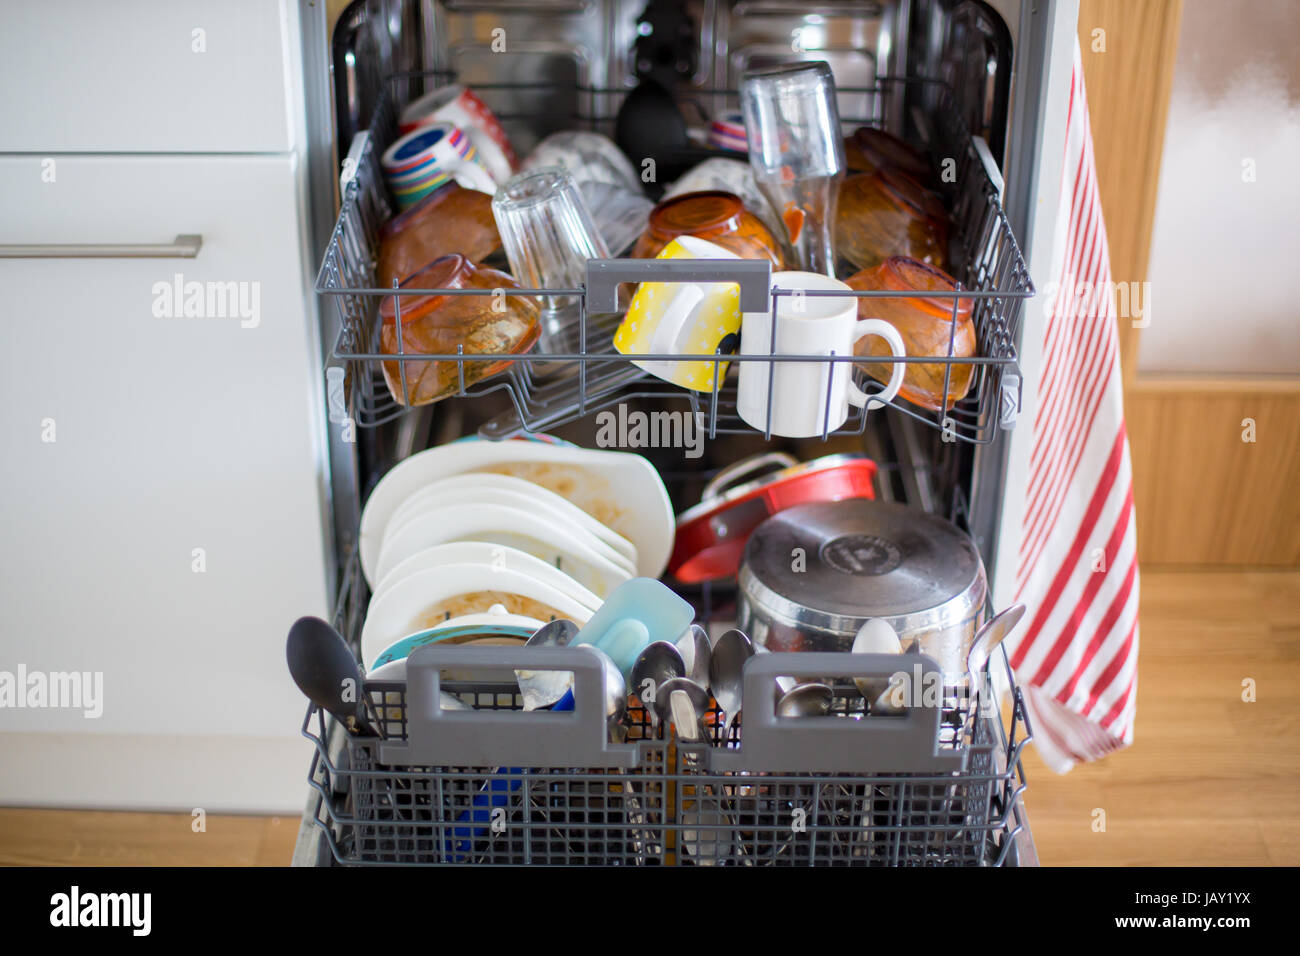 Dishwasher, filled with dirty dishes and glasses in a ...